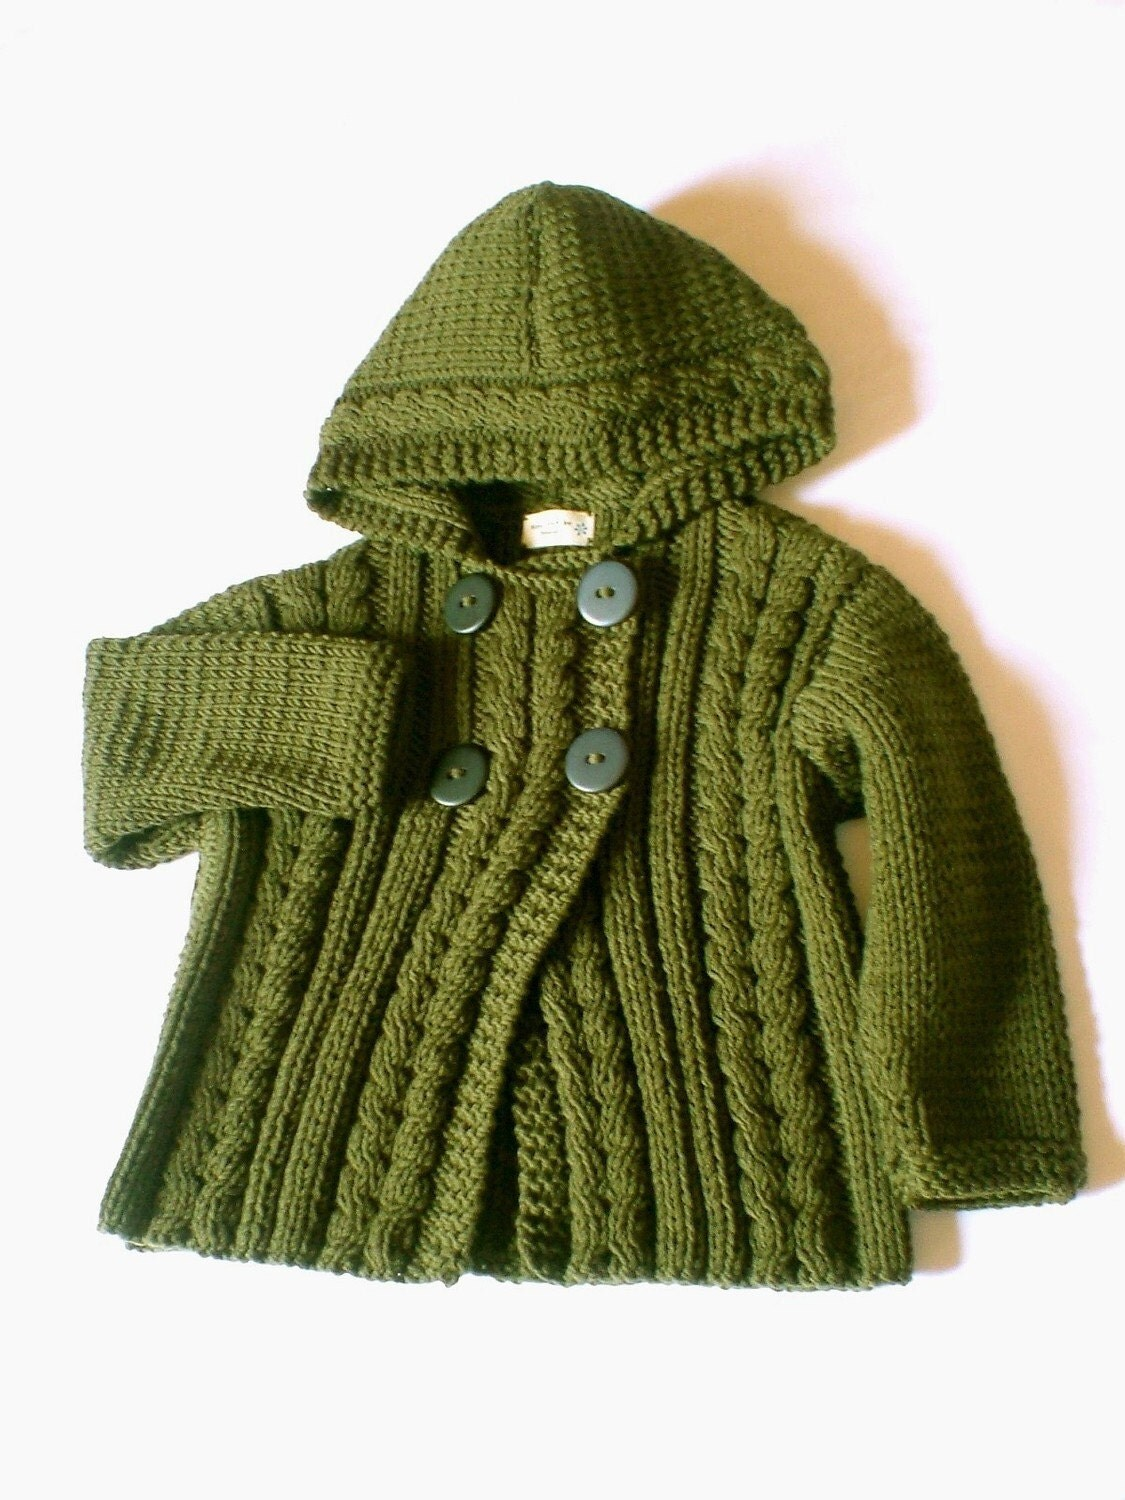 Knitting Pattern Hooded Jacket Toddler : Items similar to Orange Knit Hoodie, Wool Cable Knit ...